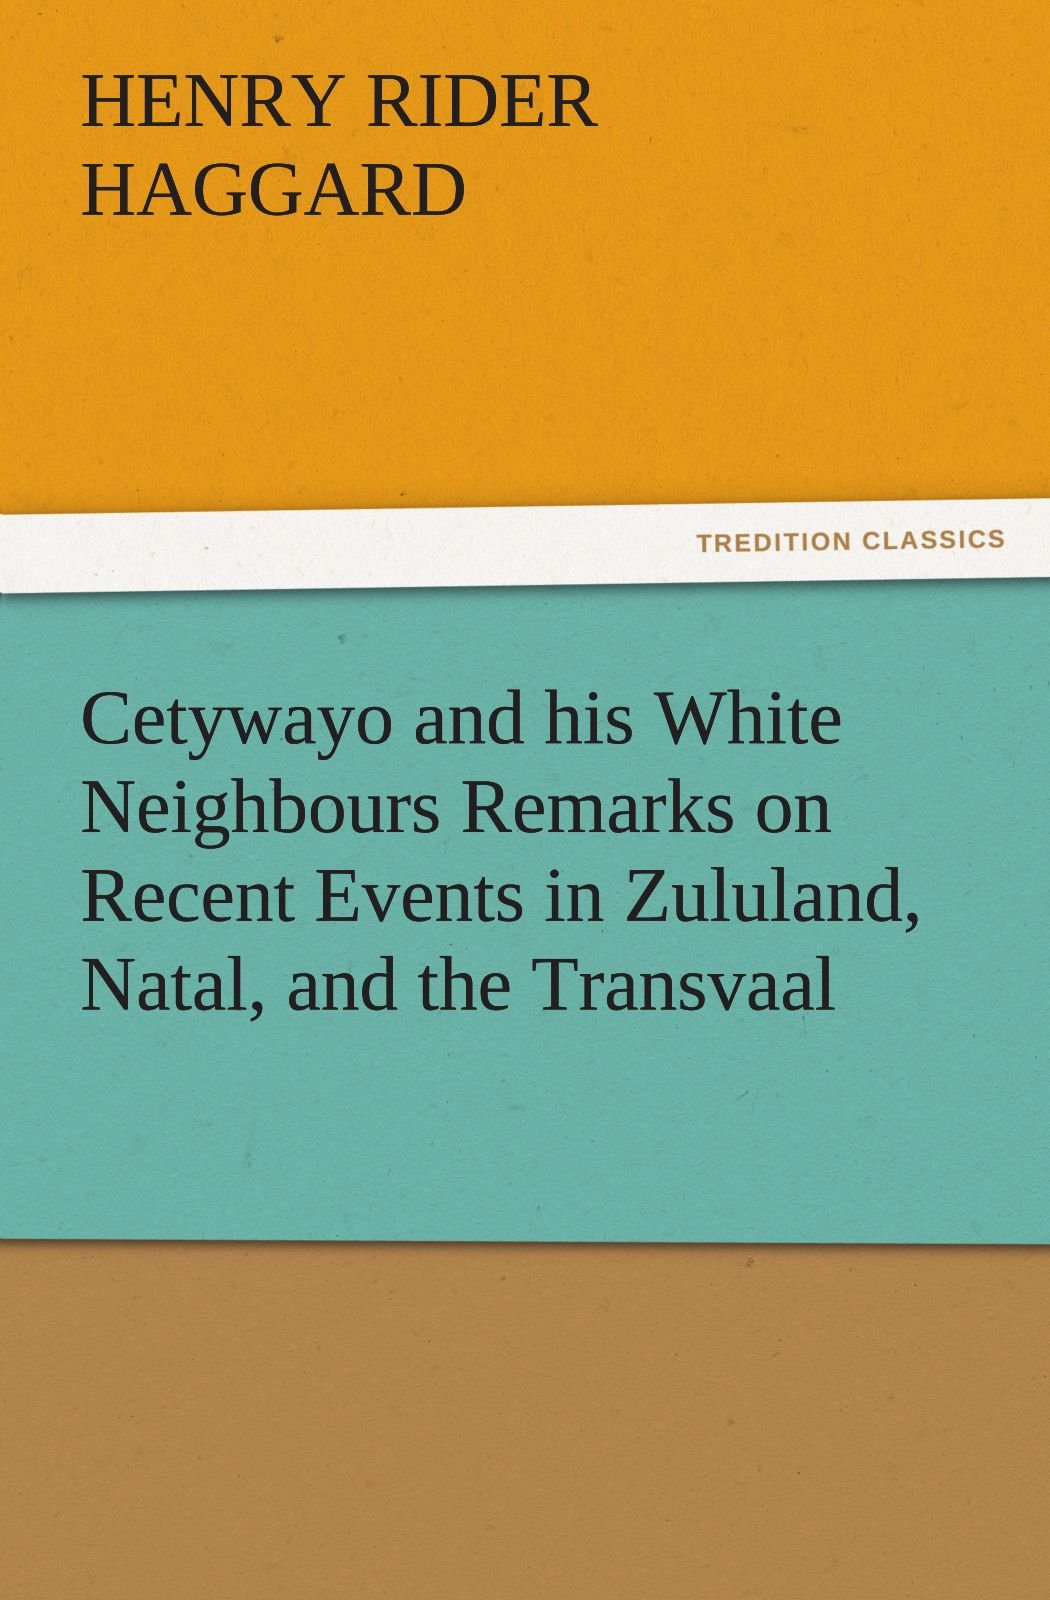 Cetywayo and his White Neighbours Remarks on Recent Events in Zululand, Natal, and the Transvaal (TREDITION CLASSICS) PDF